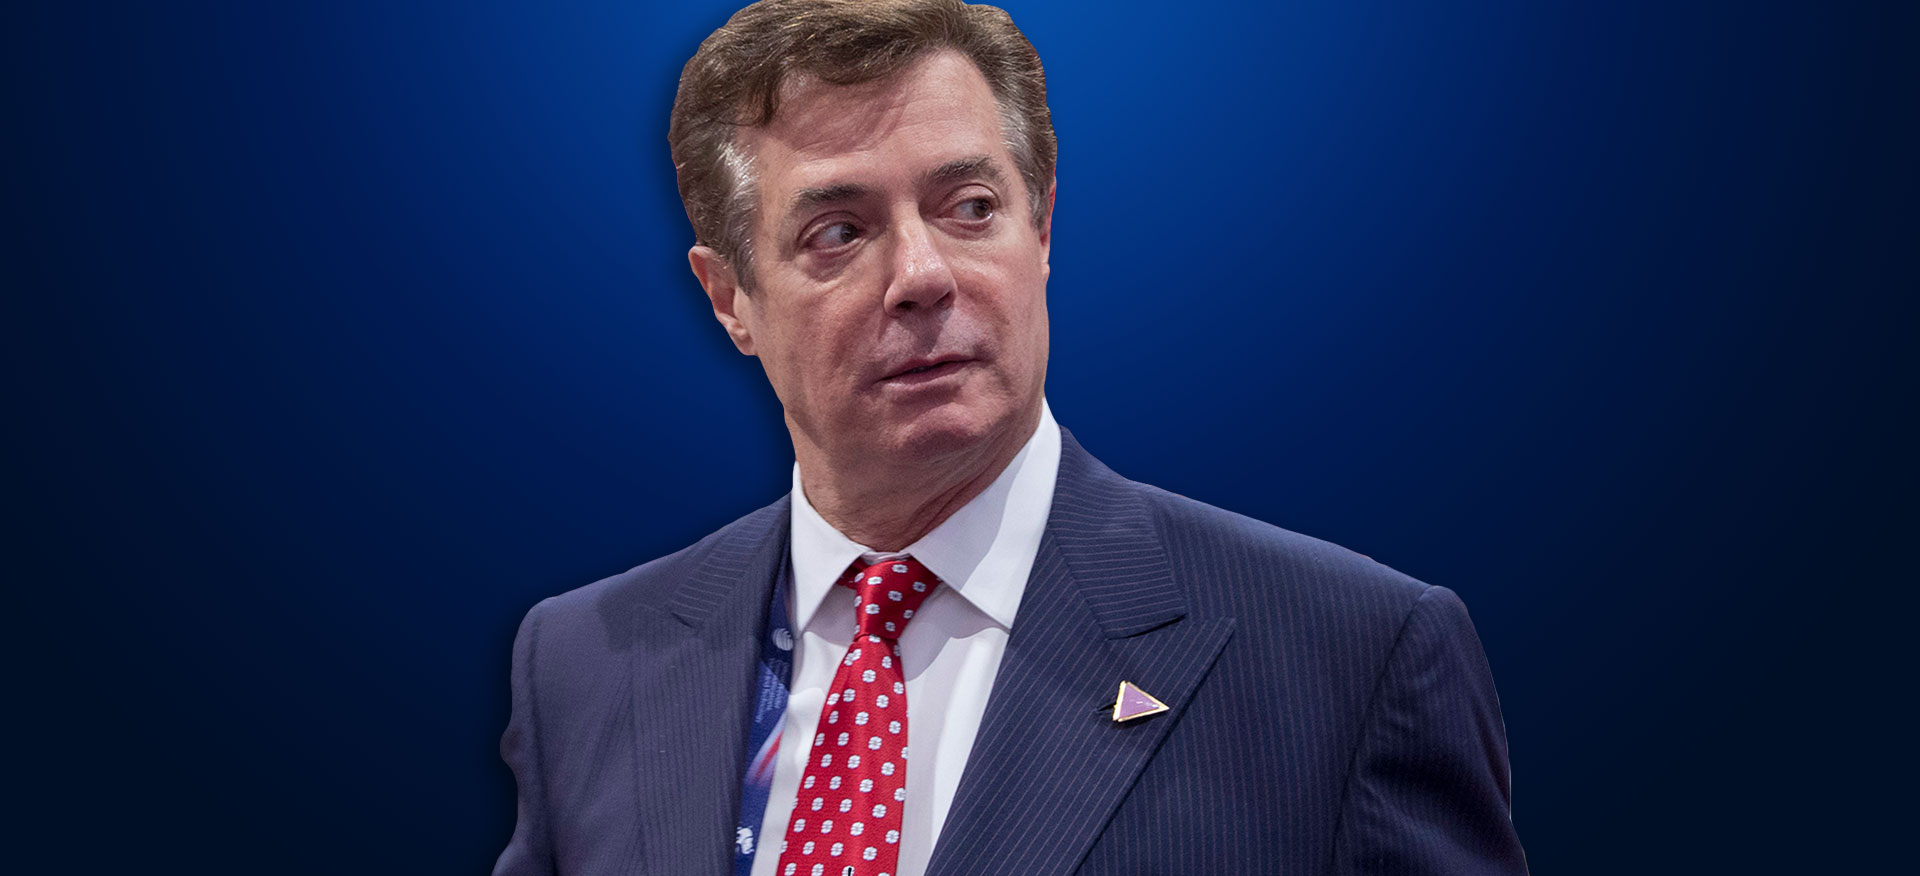 Paul Manafort Resigns From Trump Campaign